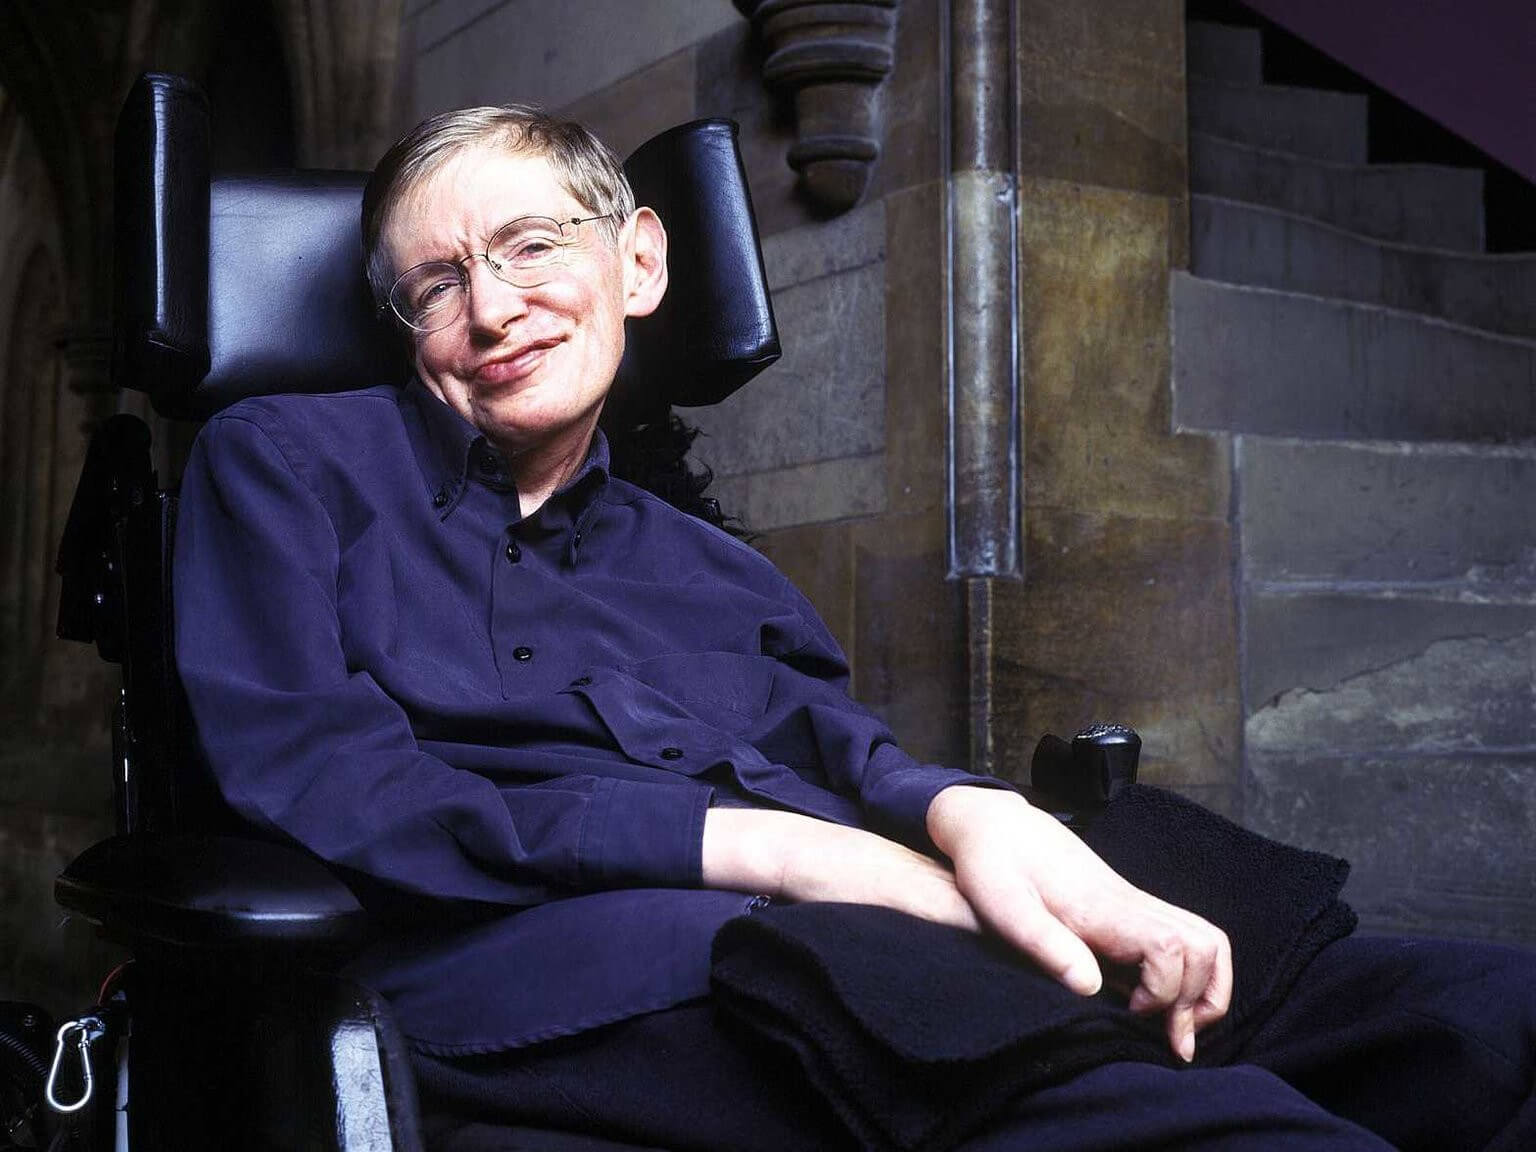 When Stephen Hawking went to Washington